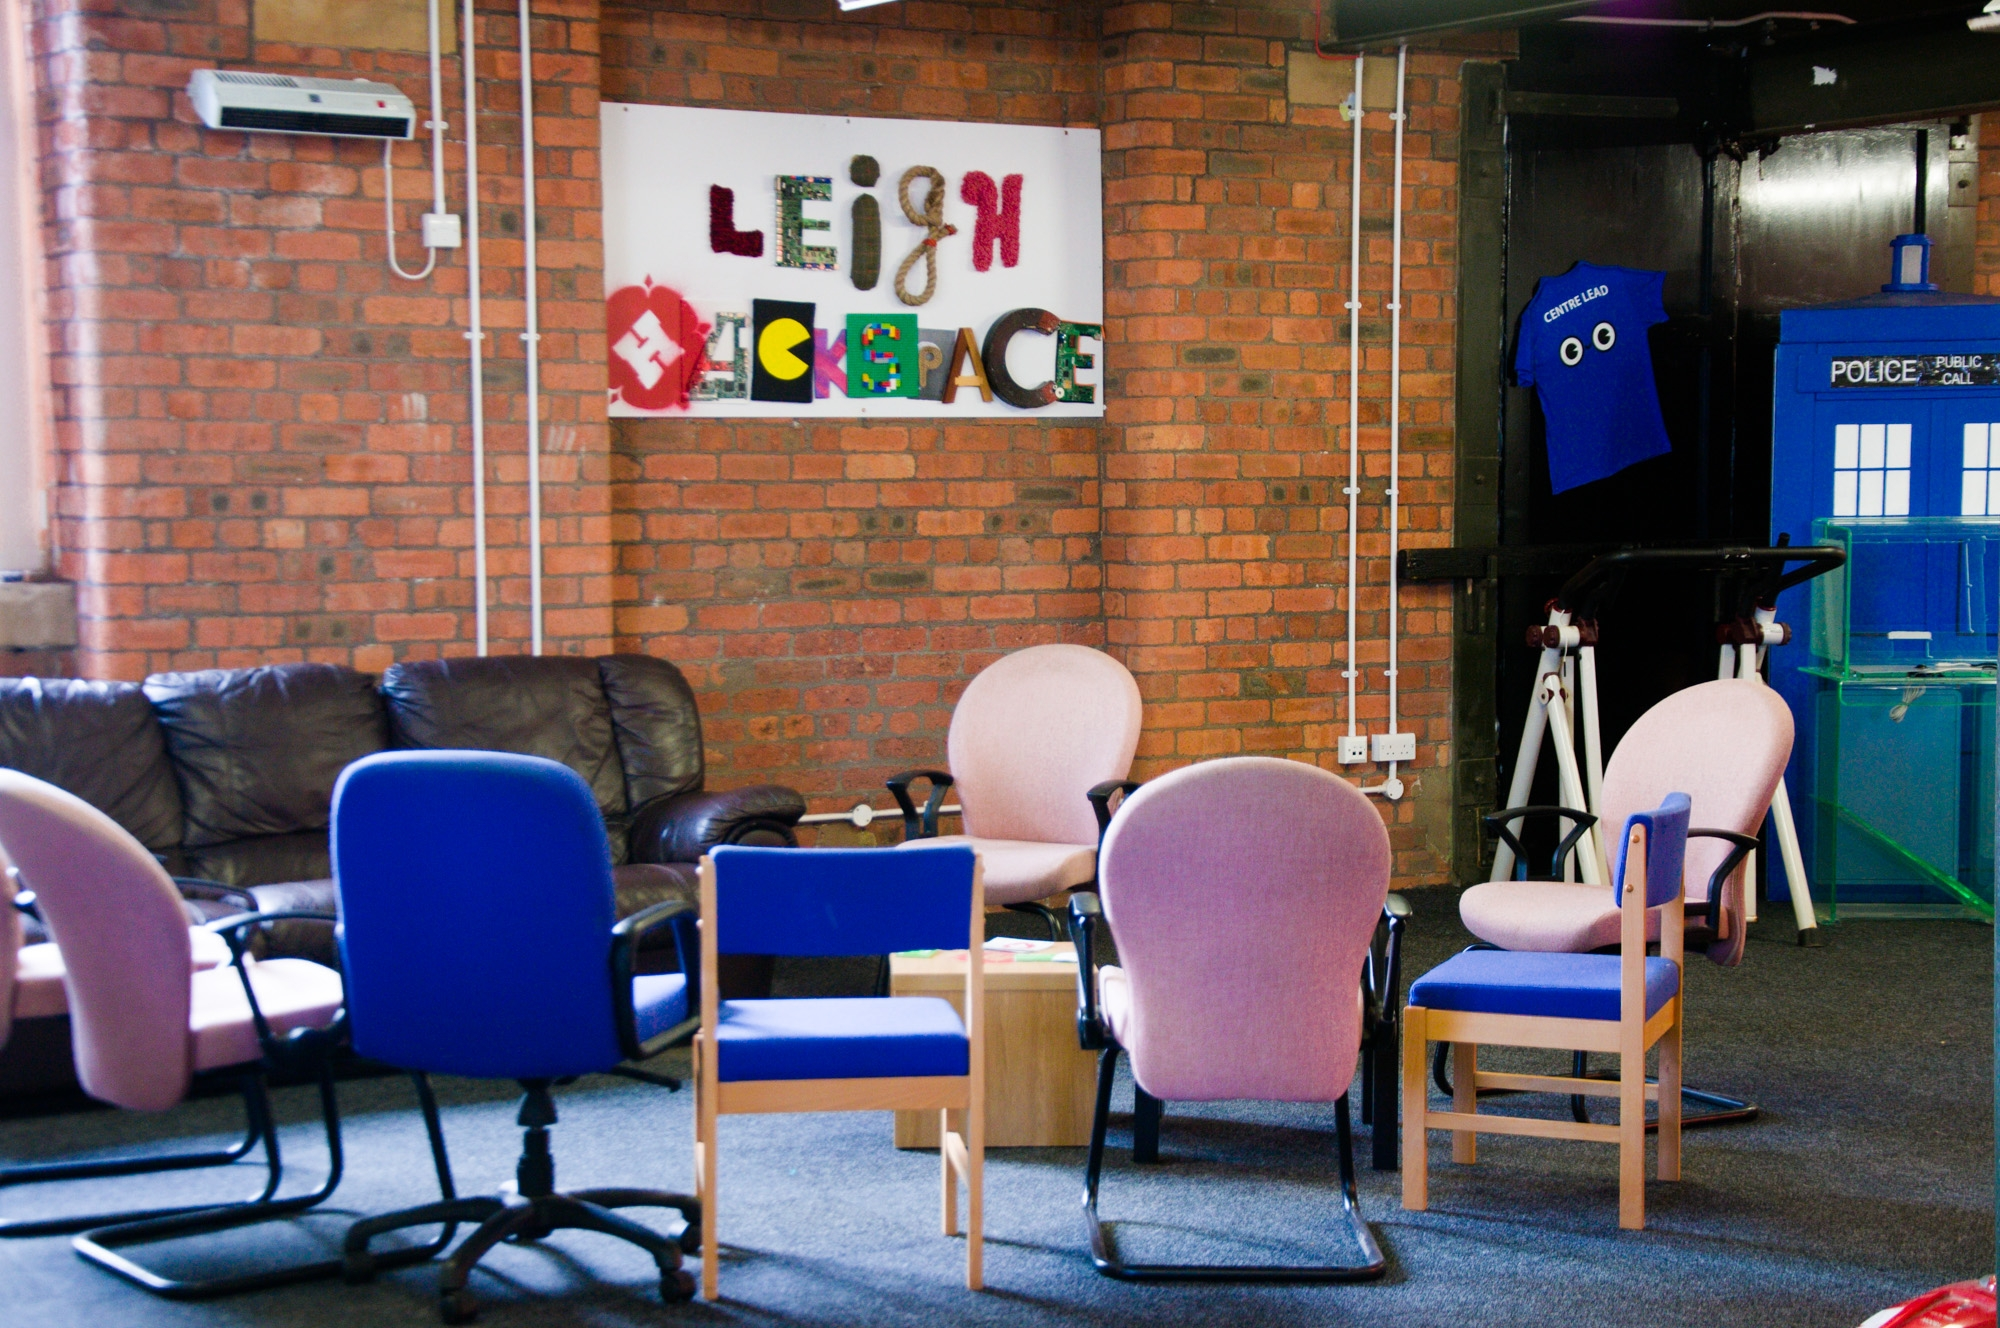 Leigh Hackspace (@leighhack) Cover Image